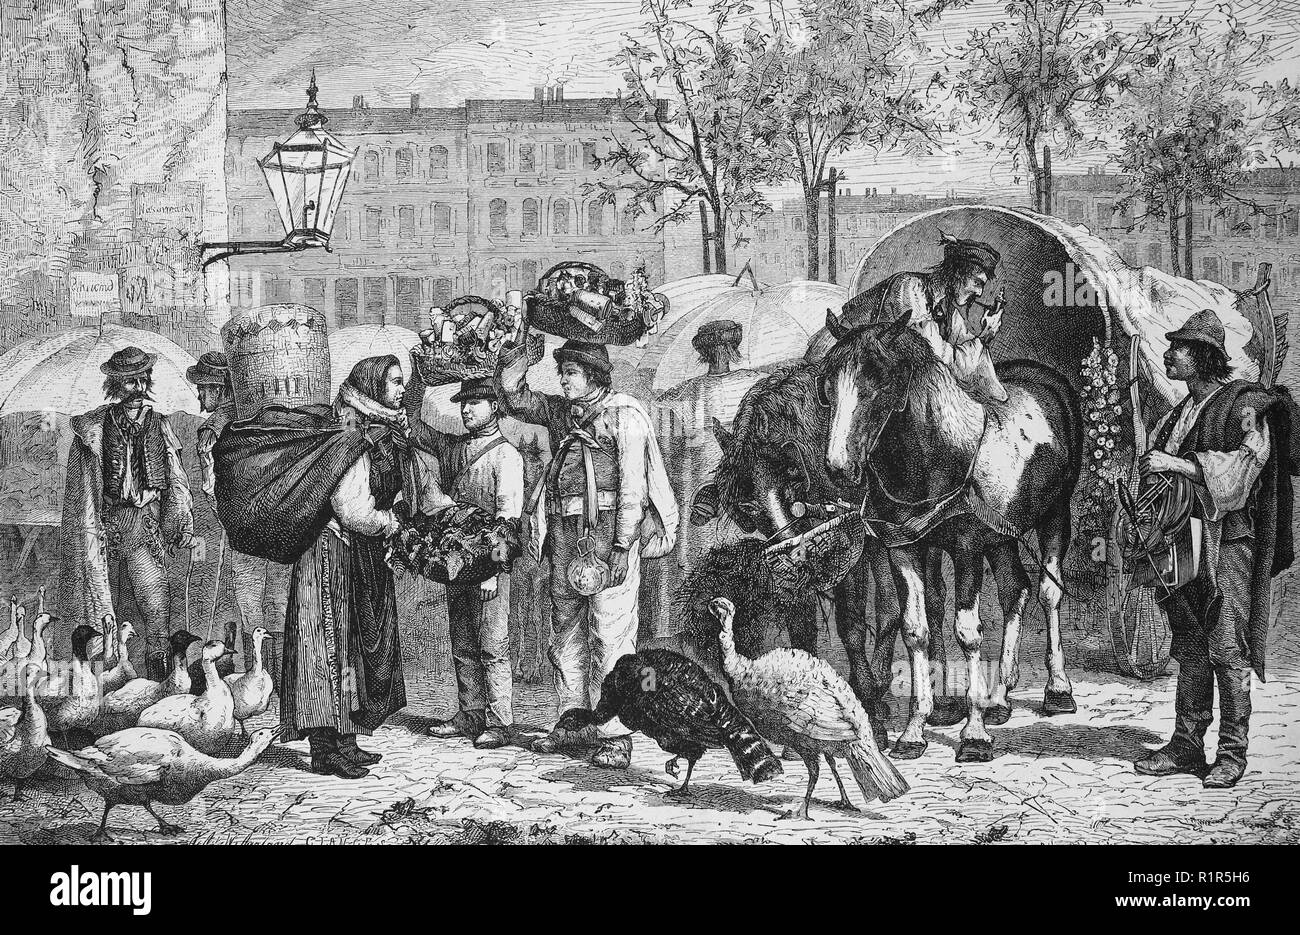 Digital improved reproduction, slavic and hungarian people at the Naschmarkt in Vienna, Austria, original print from the year 1880 - Stock Image